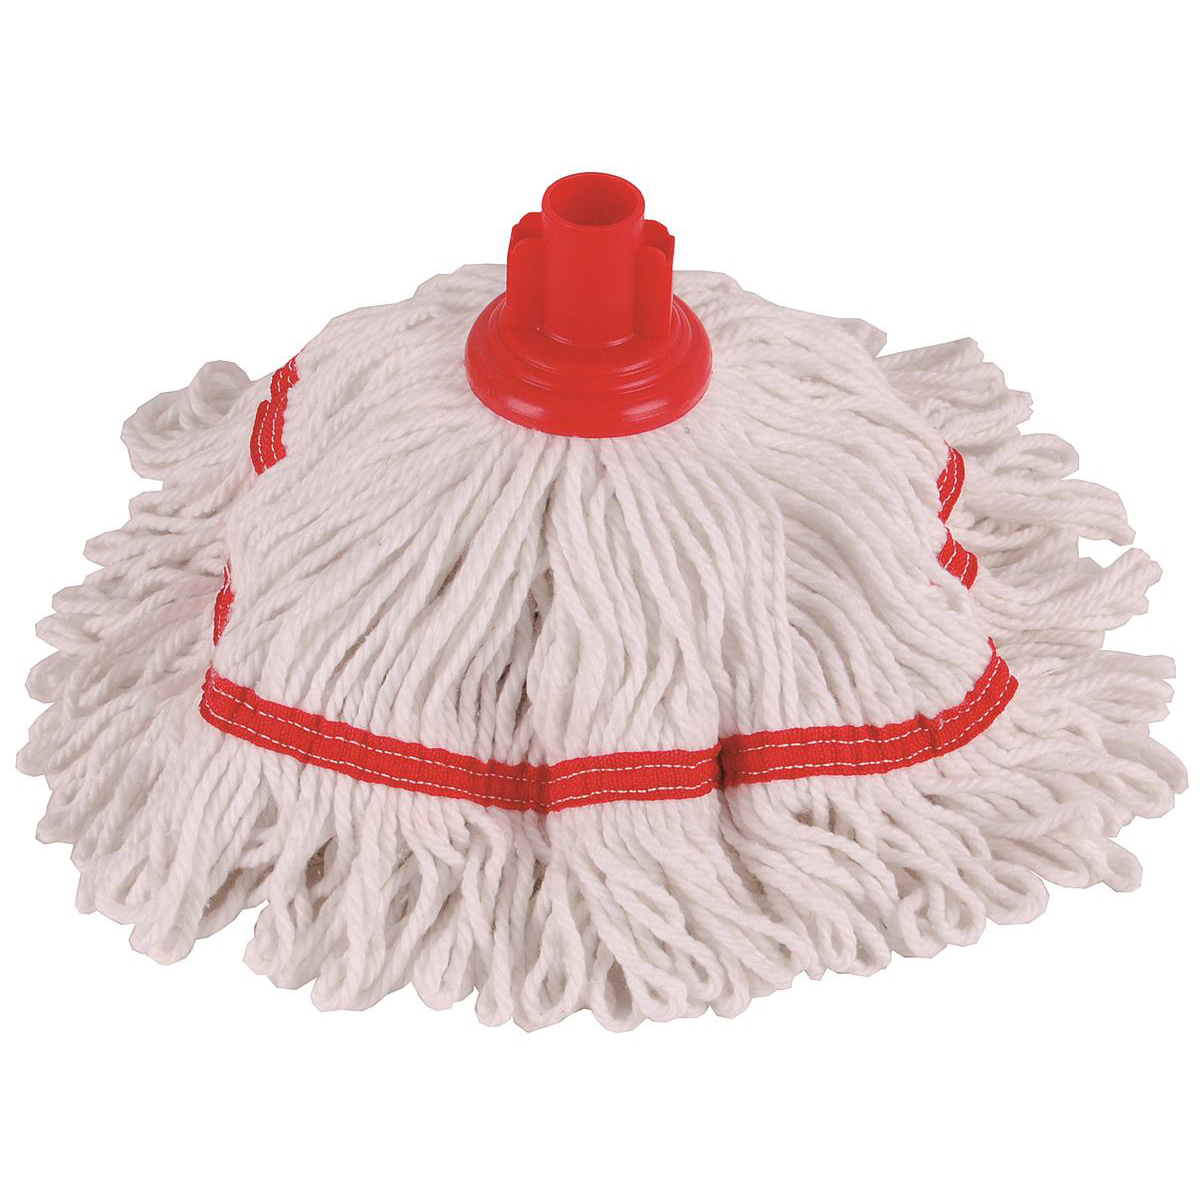 Robert Scott & Sons Hygiemix T1 Socket Cotton & Synthetic Colour-coded Mop 250g Red Ref 103064RED